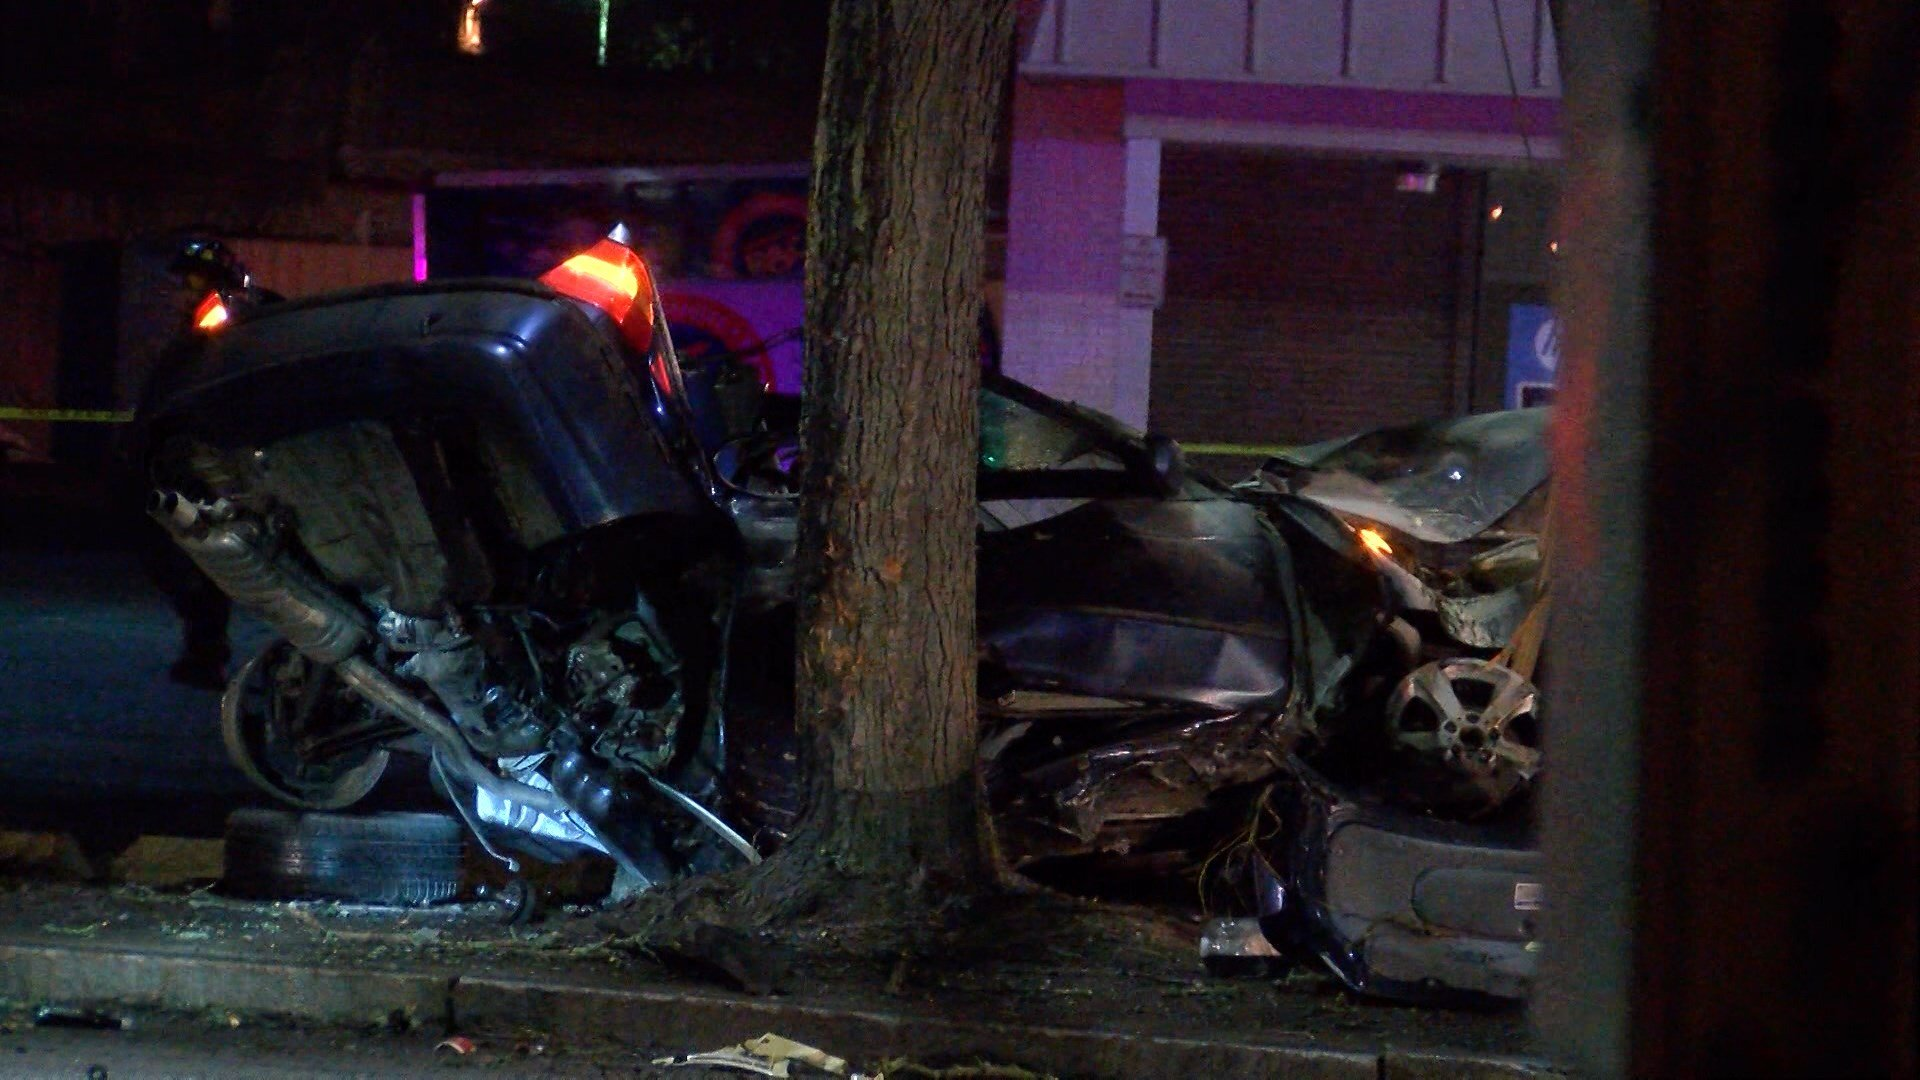 WENY News - Police Investigating Late Night Crash